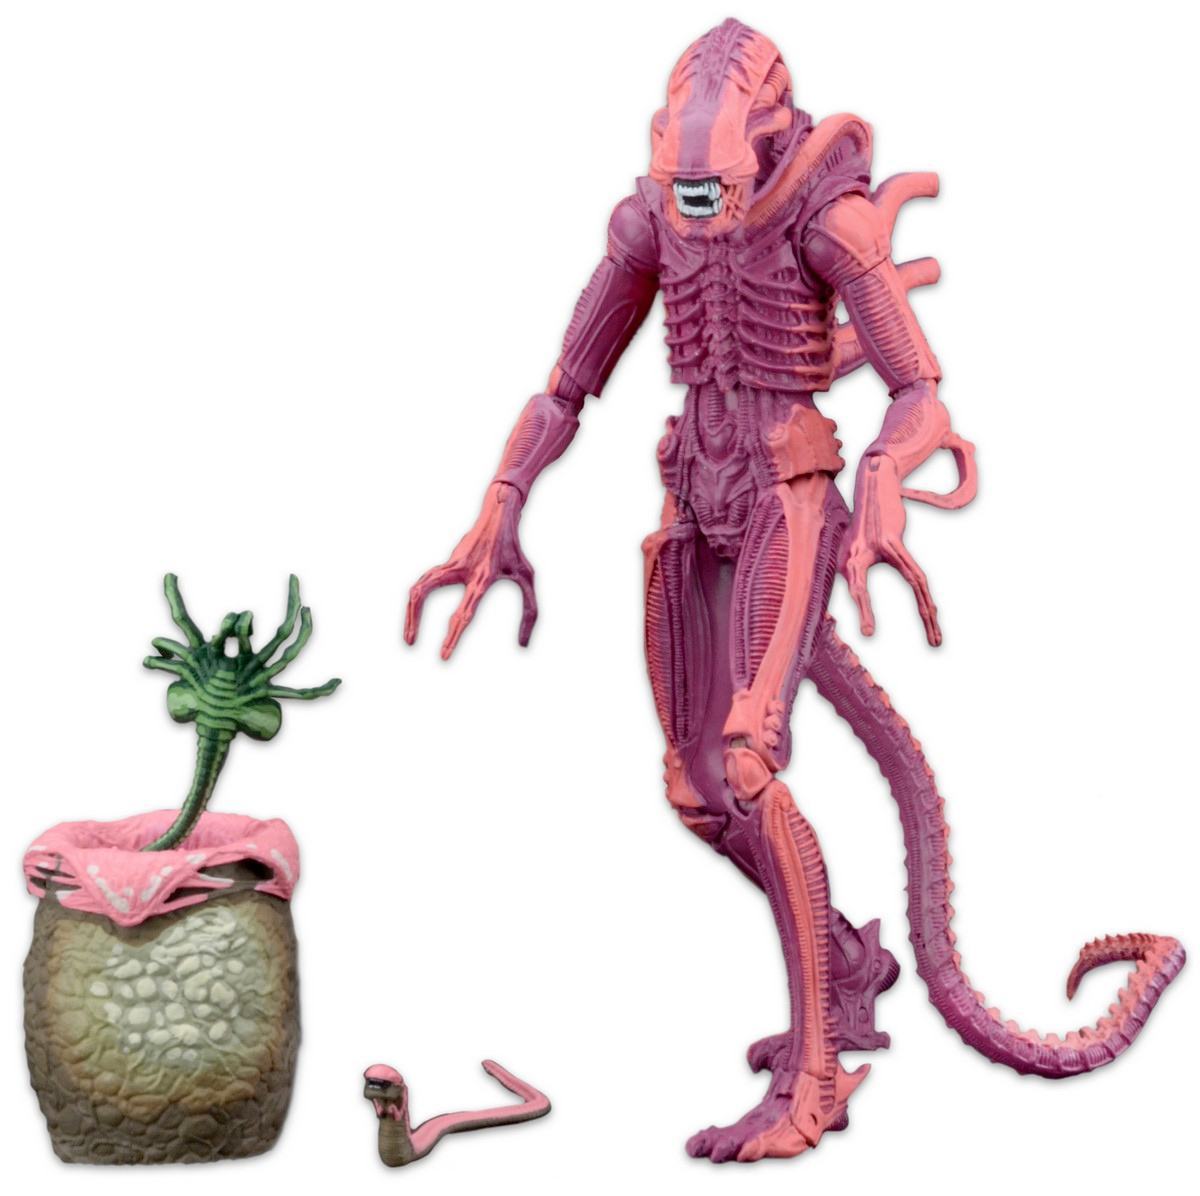 xenomorph-warrior-aliens-arcade-appearance-action-figure-05